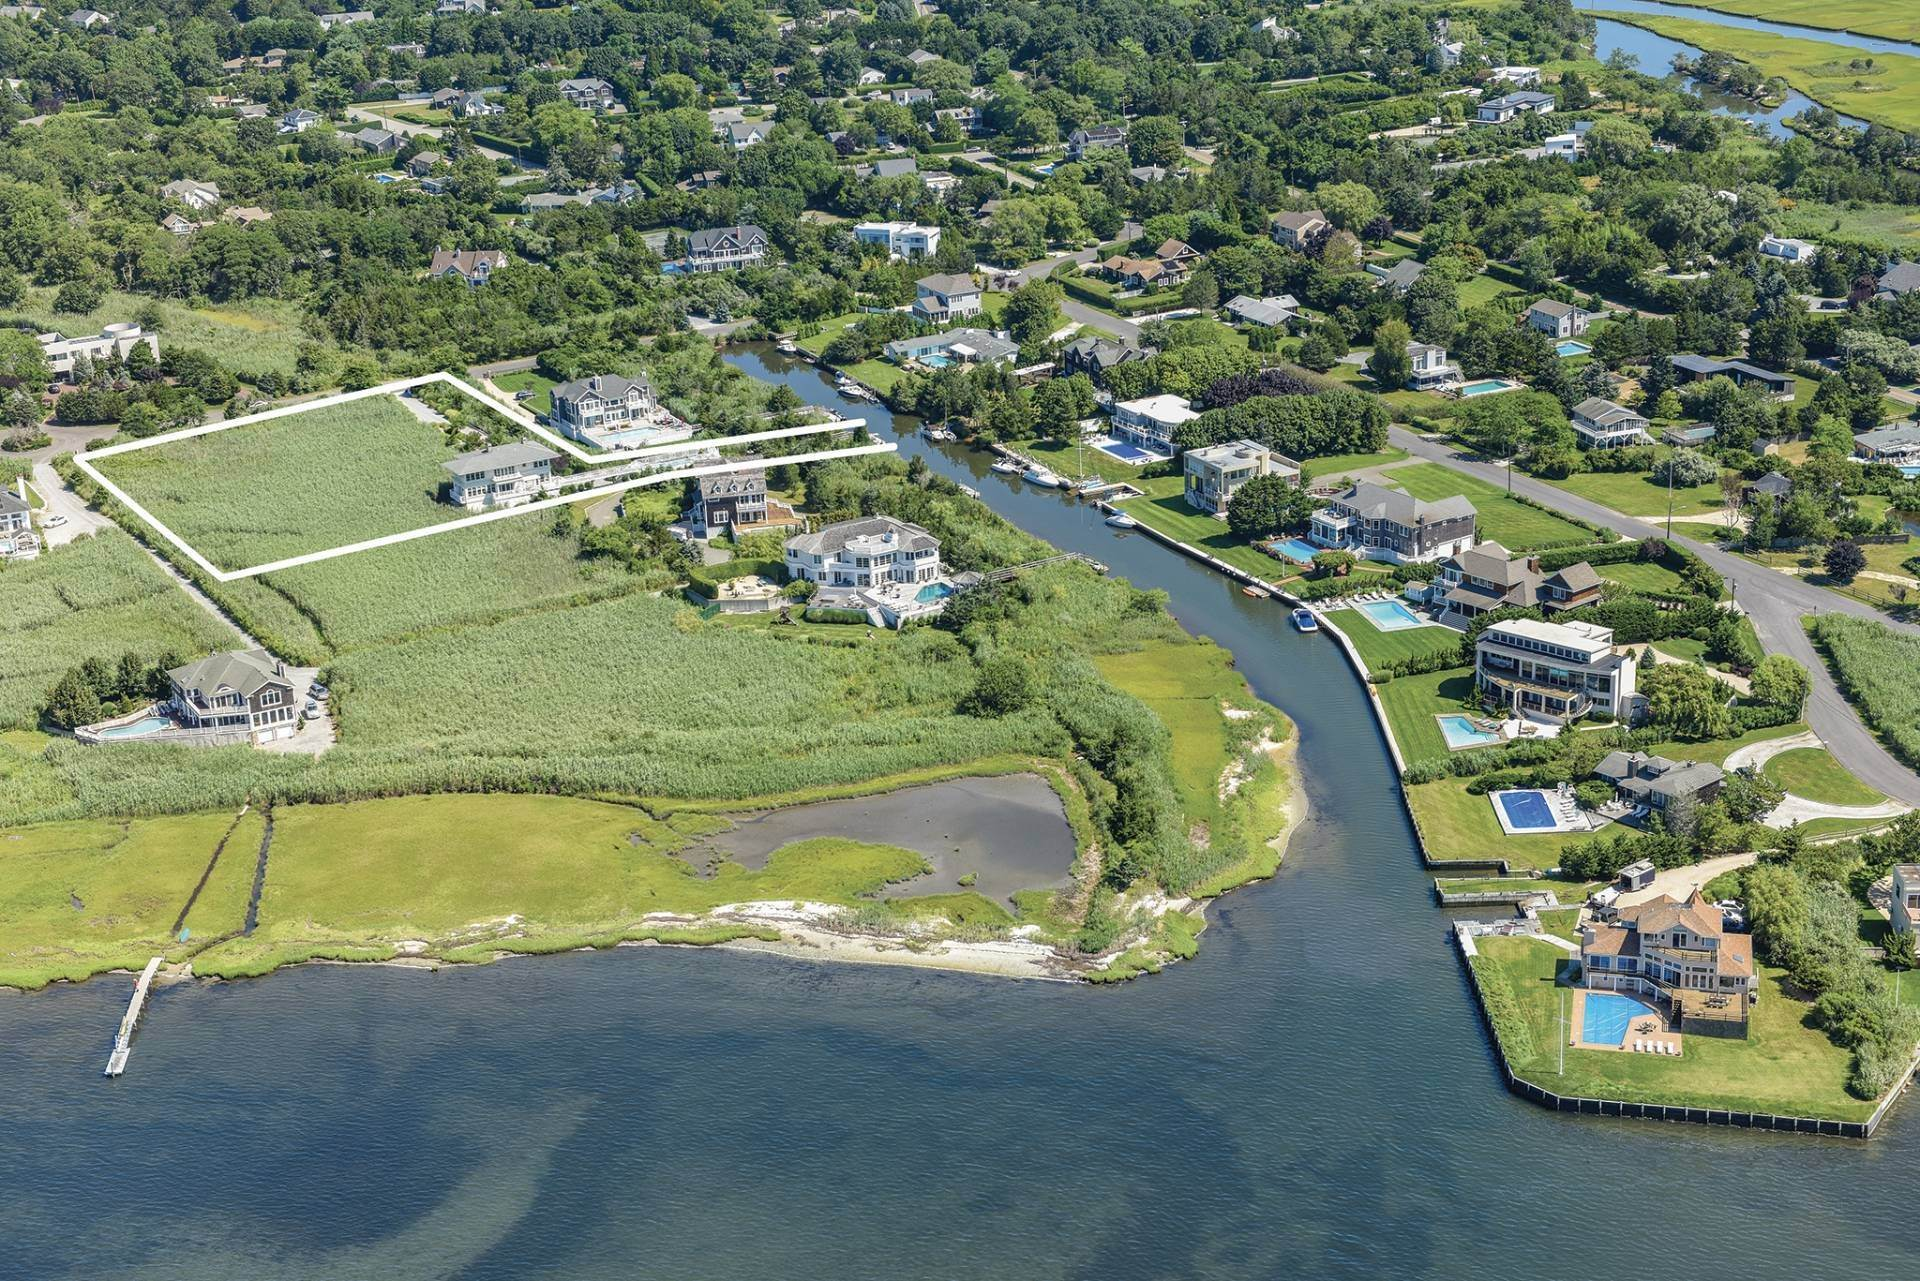 Single Family Home for Sale at Celebrate Nature's Beauty: Sunsets, Water Views, Pool & Dock 5 Bay Meadow Lane, Westhampton, NY 11977